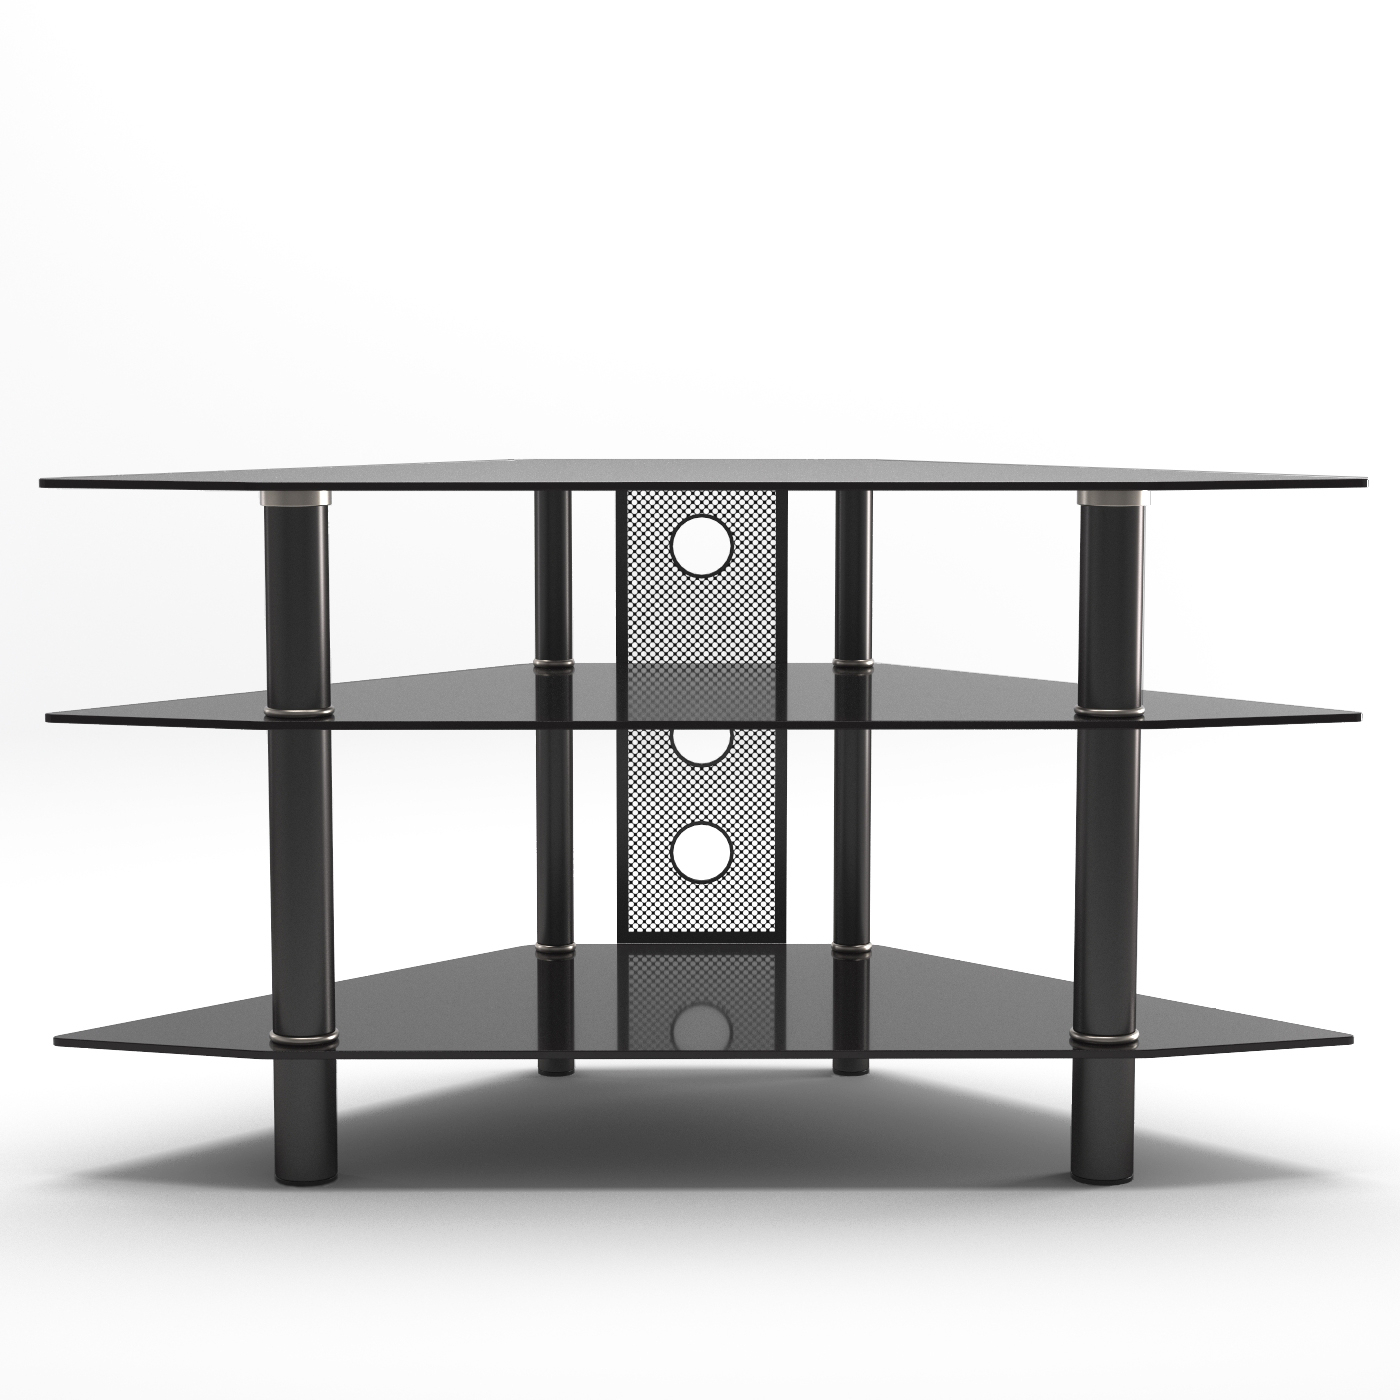 Popular Techlink Bench Corner Tv Stands For Corner Tv Stand Glass Oak Stands With Doors Black Techlink Bench (View 17 of 20)